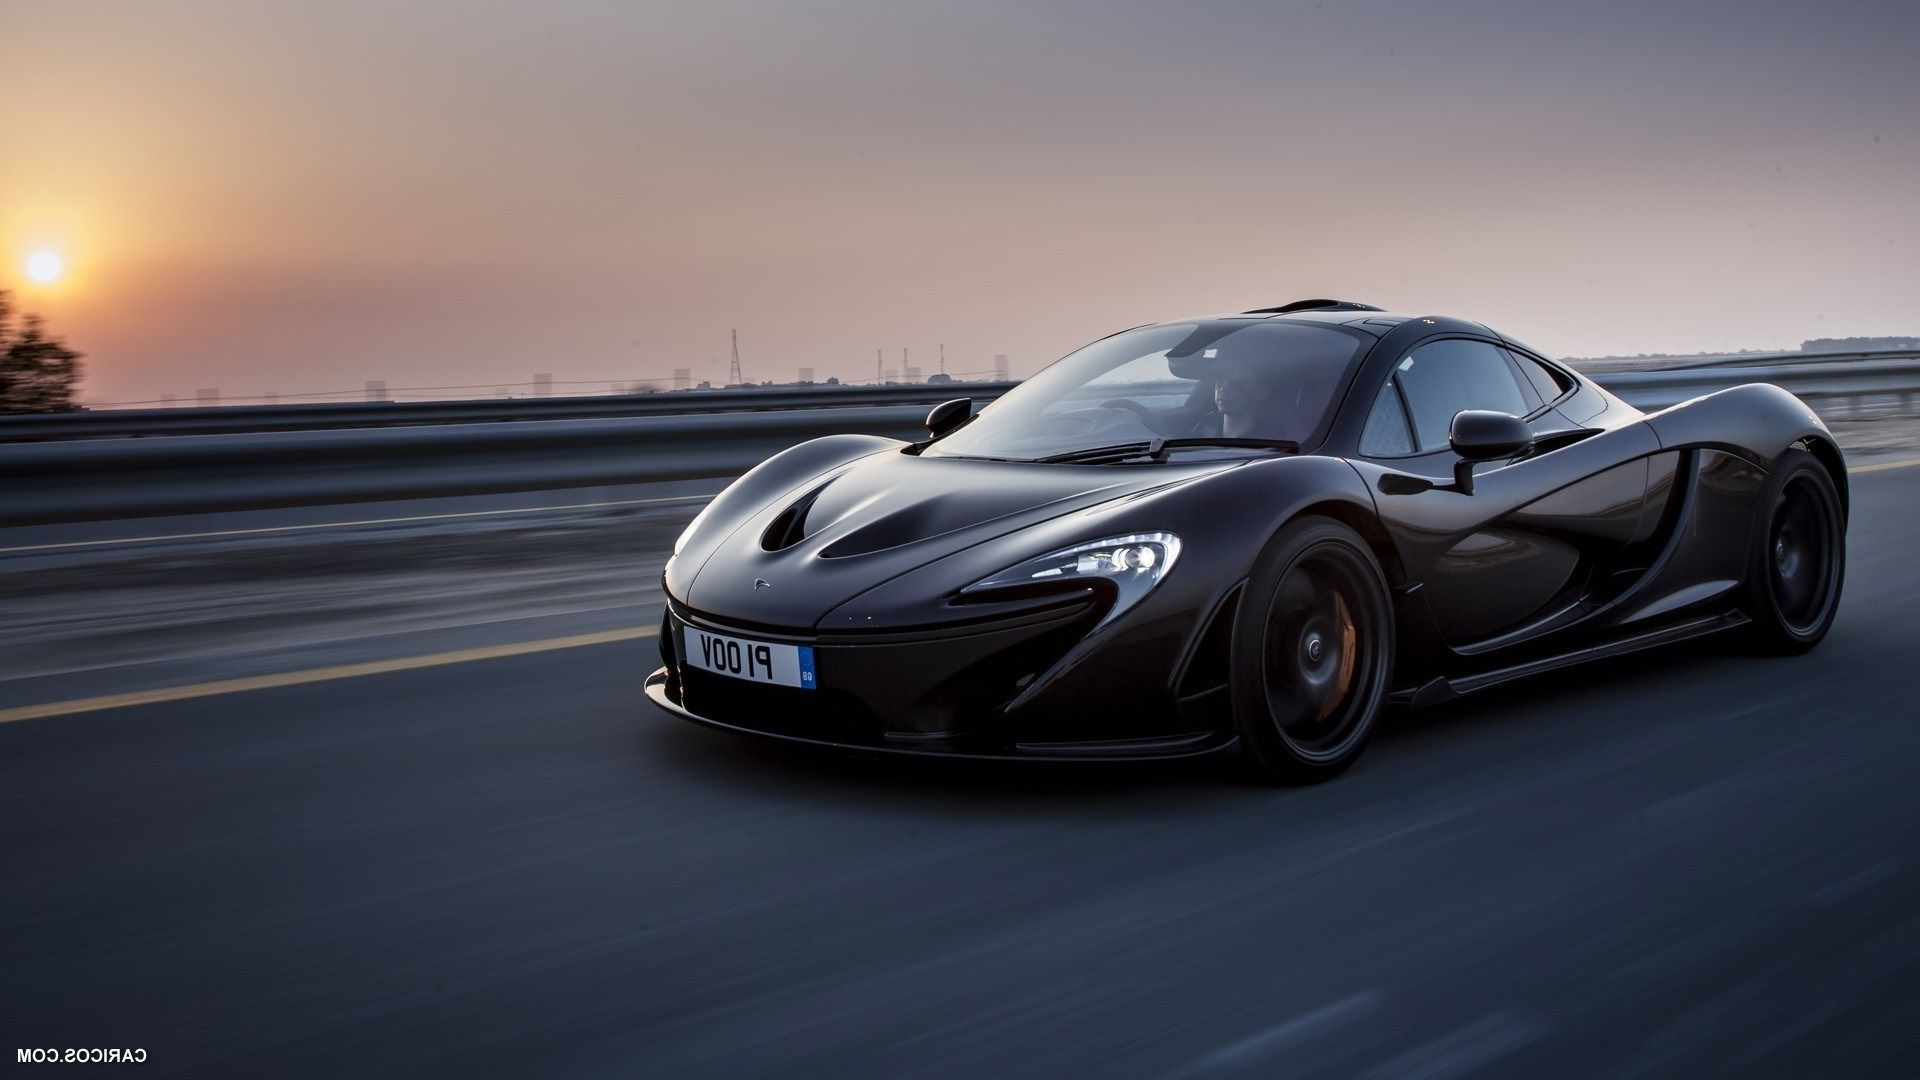 1920x1080 Mclaren Free Wallpaper For Pc Super Cars Car Wallpapers Bmw Wallpapers